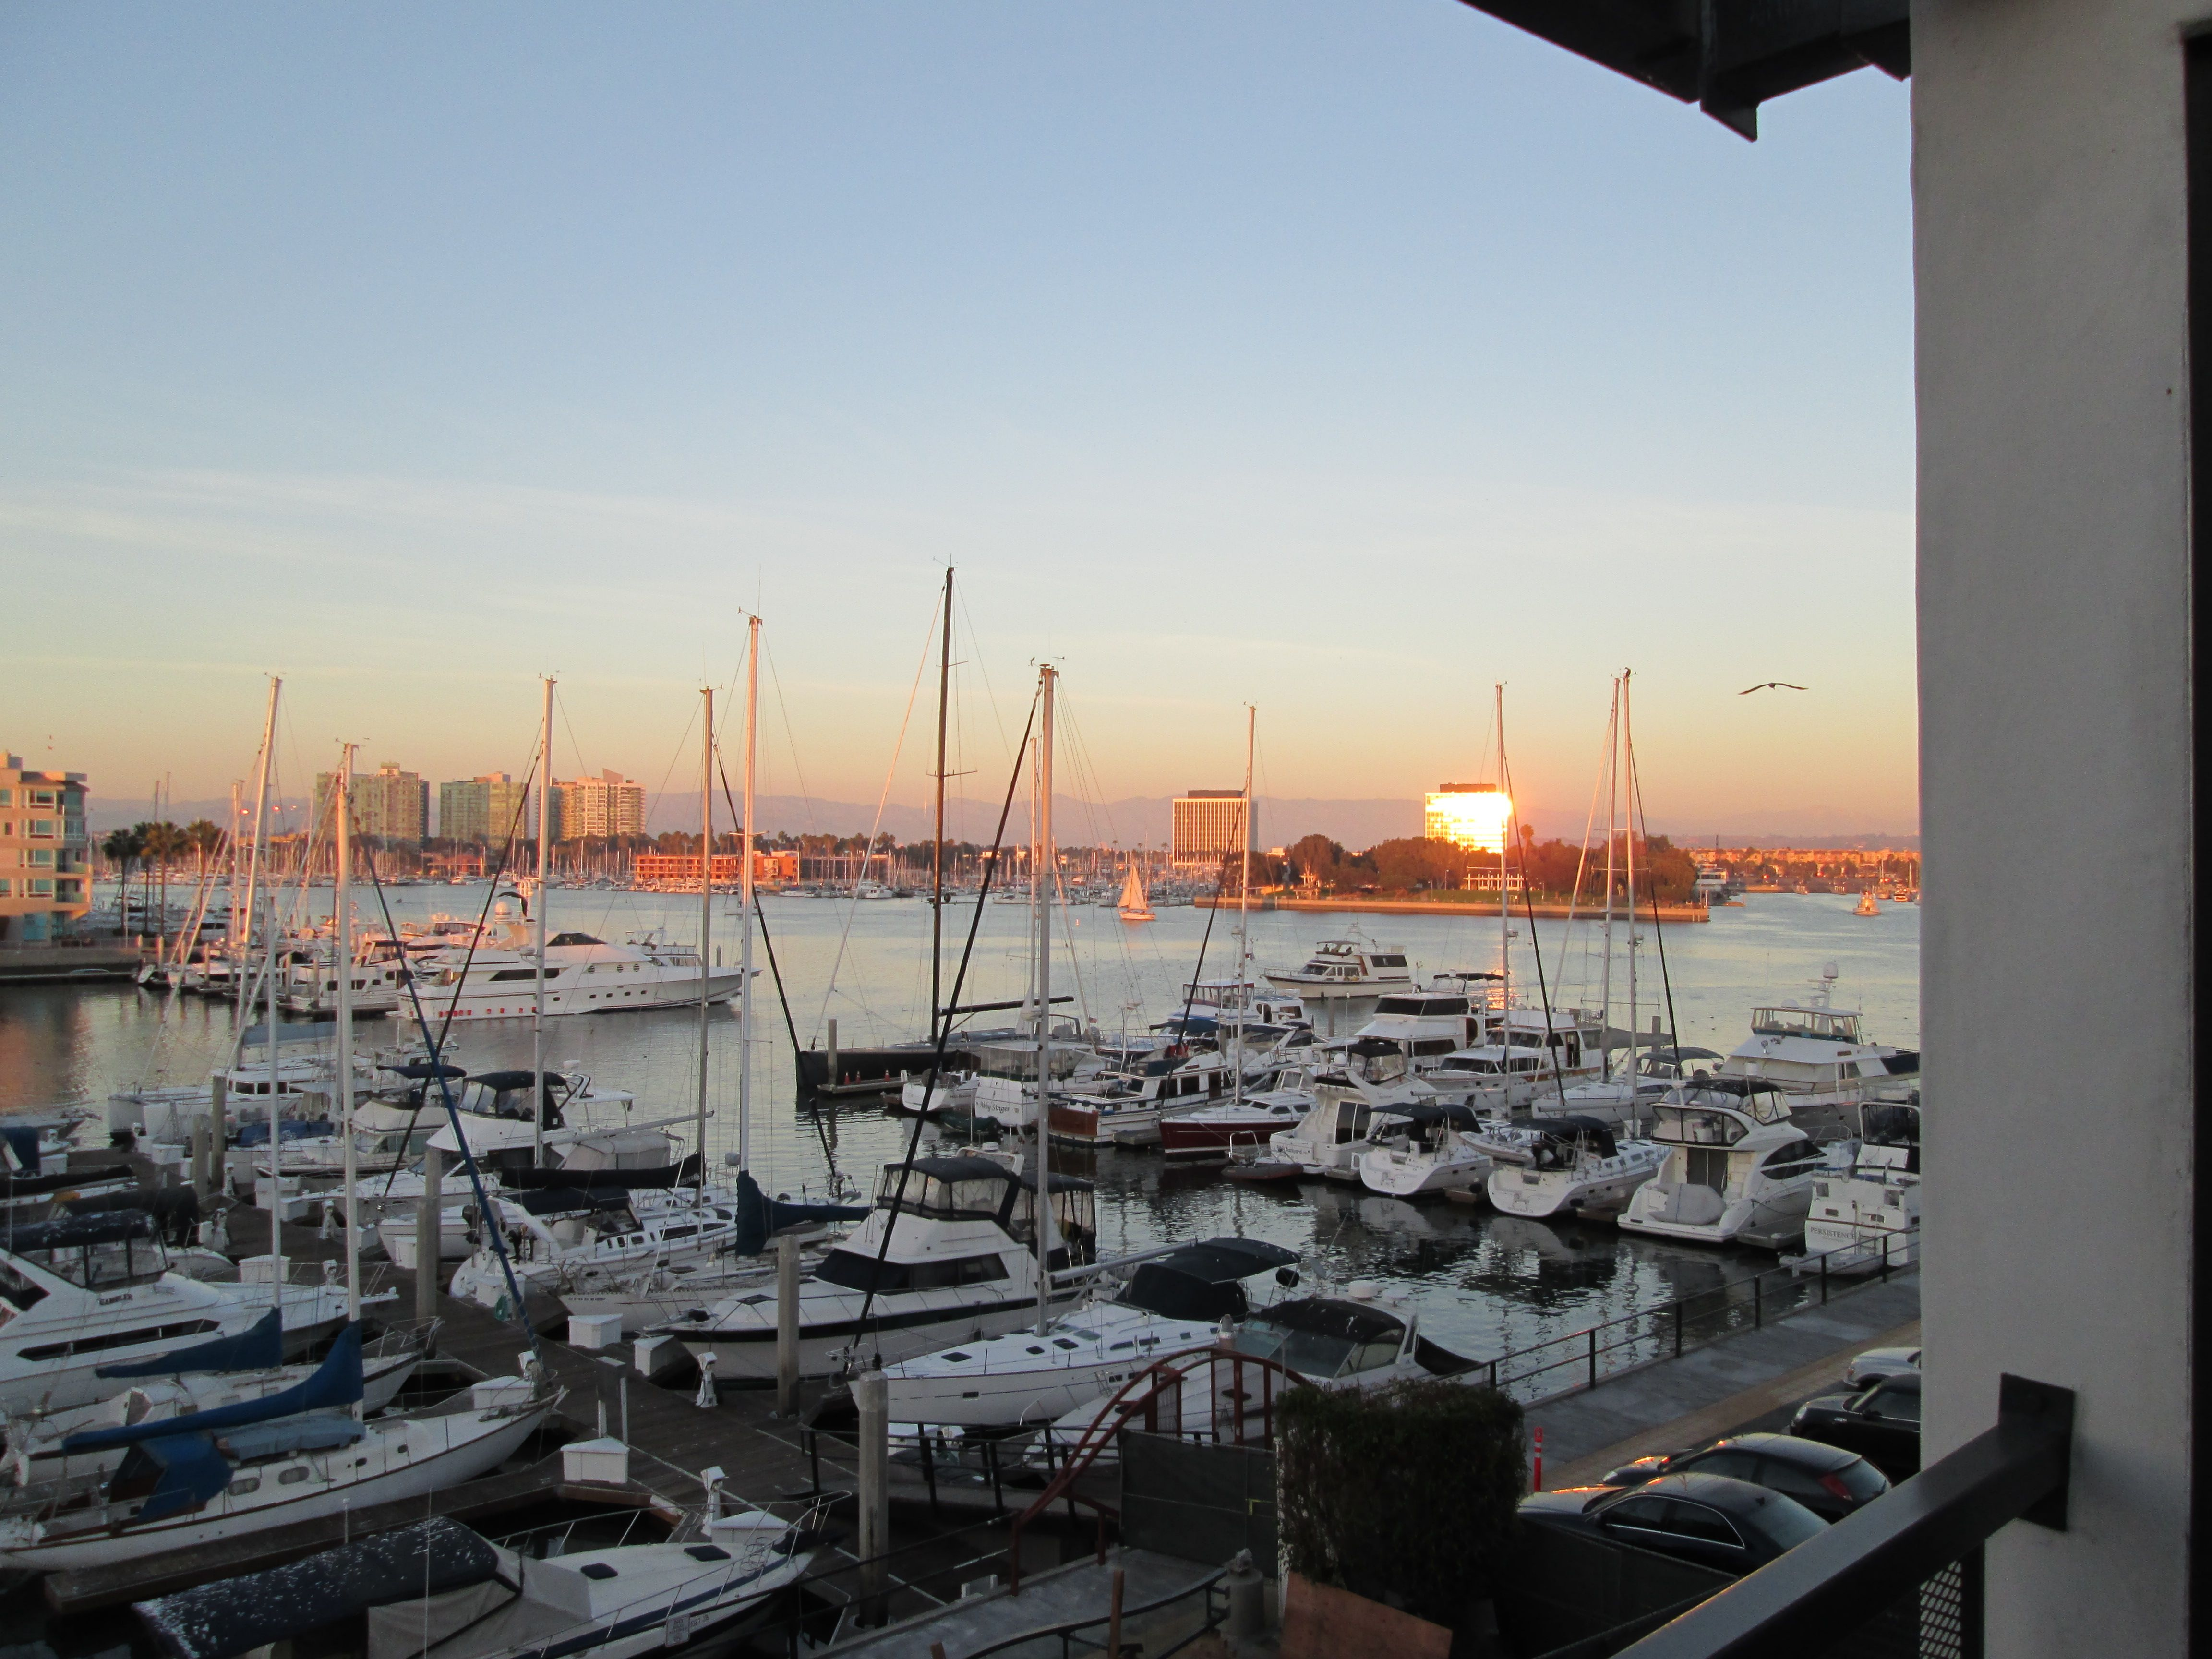 Marina Del Rey At Sunset Seen From The Window At Waves Mdr Waves